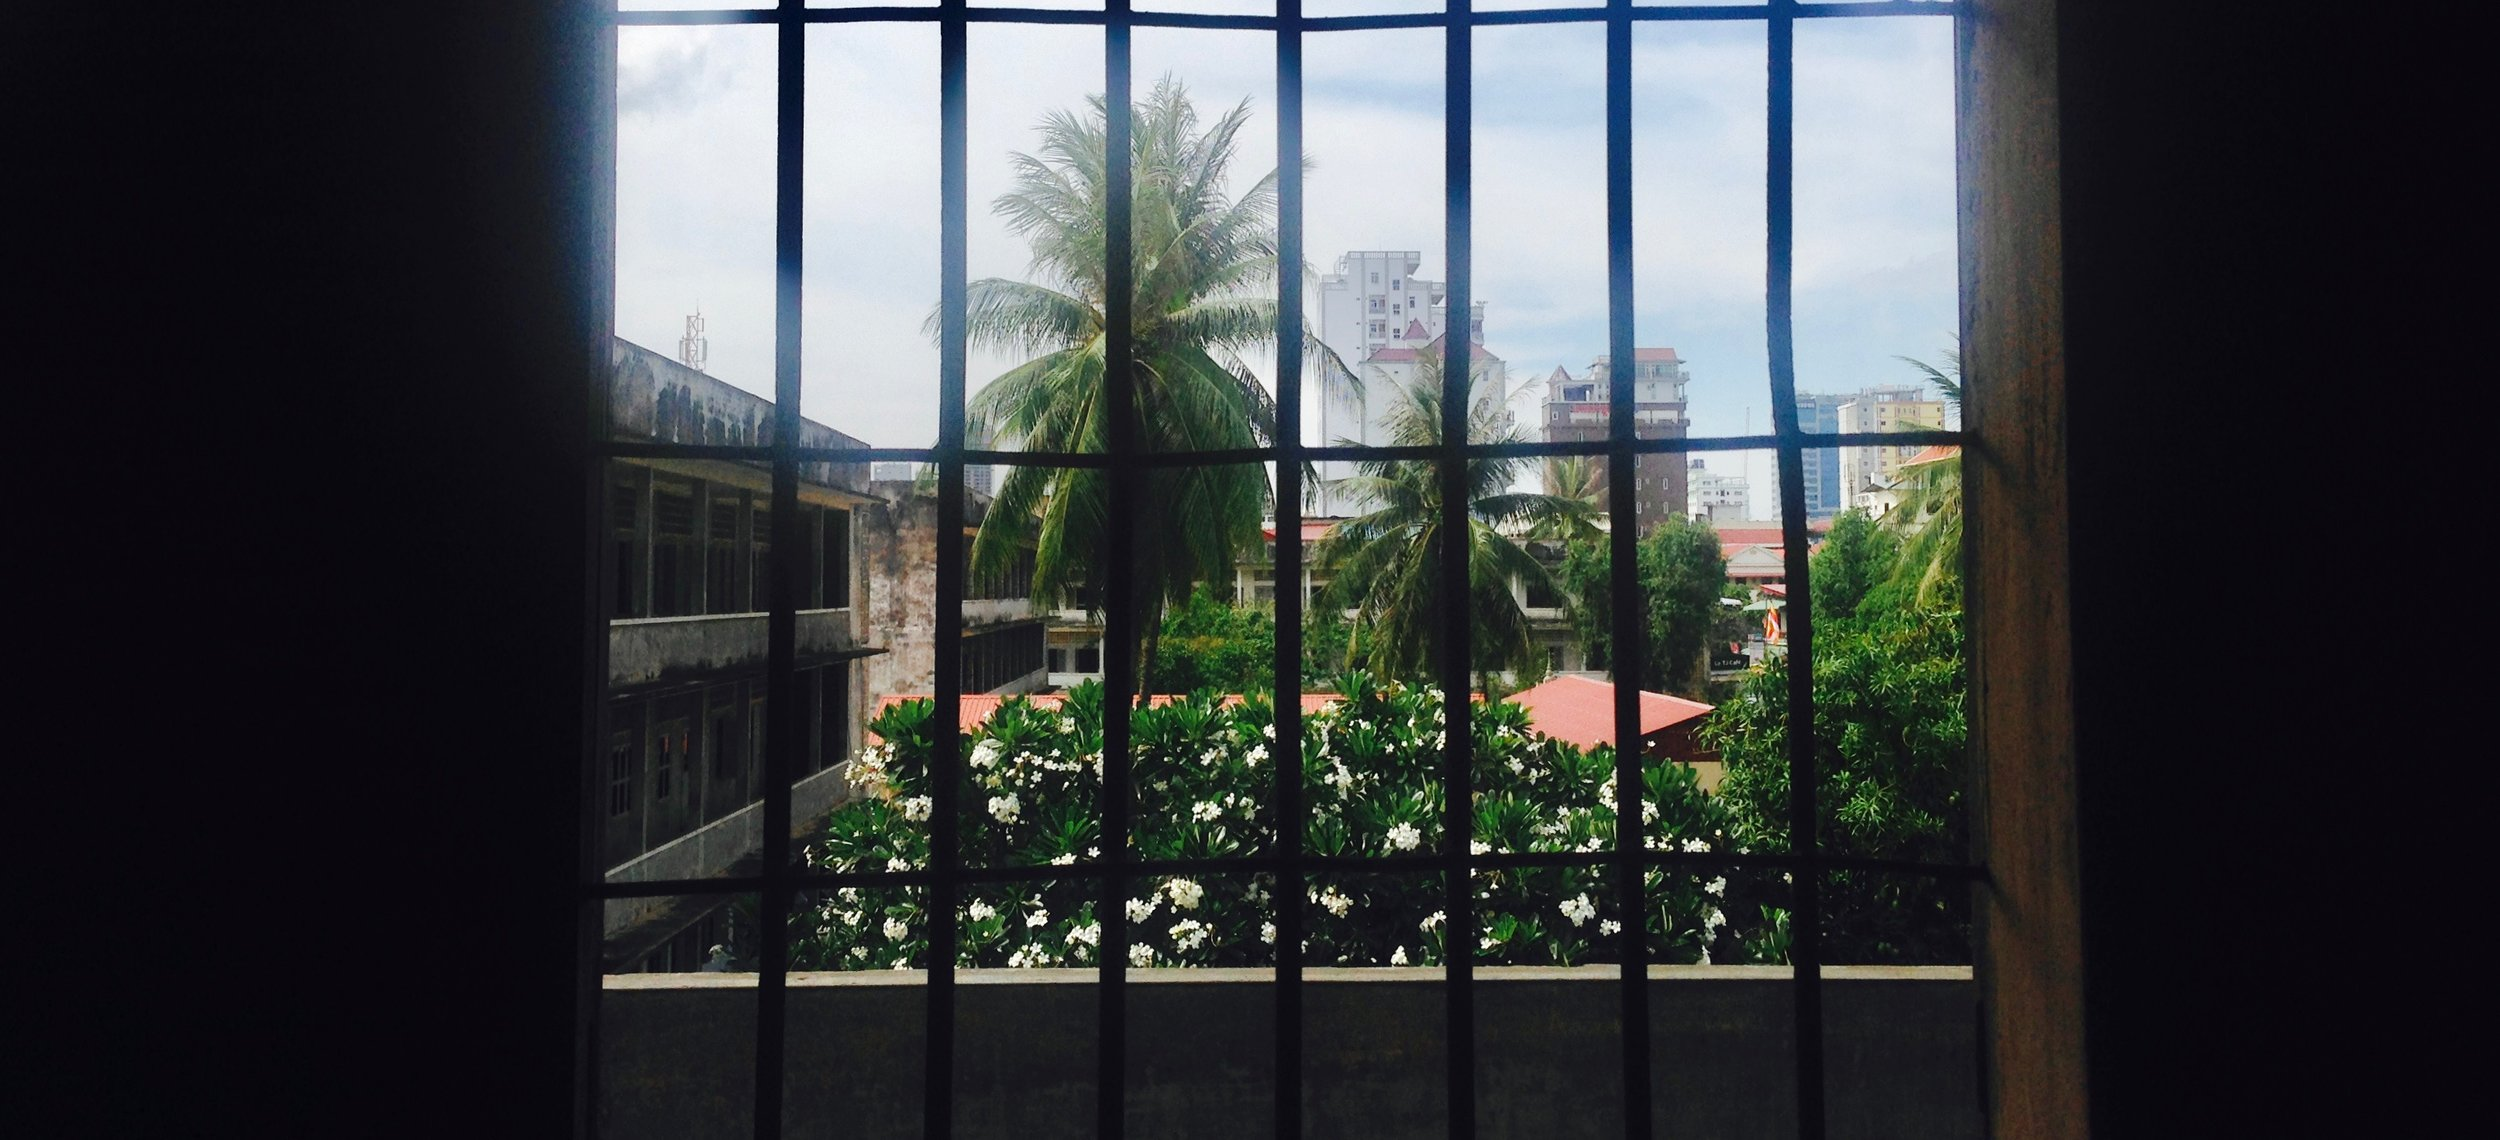 Looking out onto the courtyard from behind bars